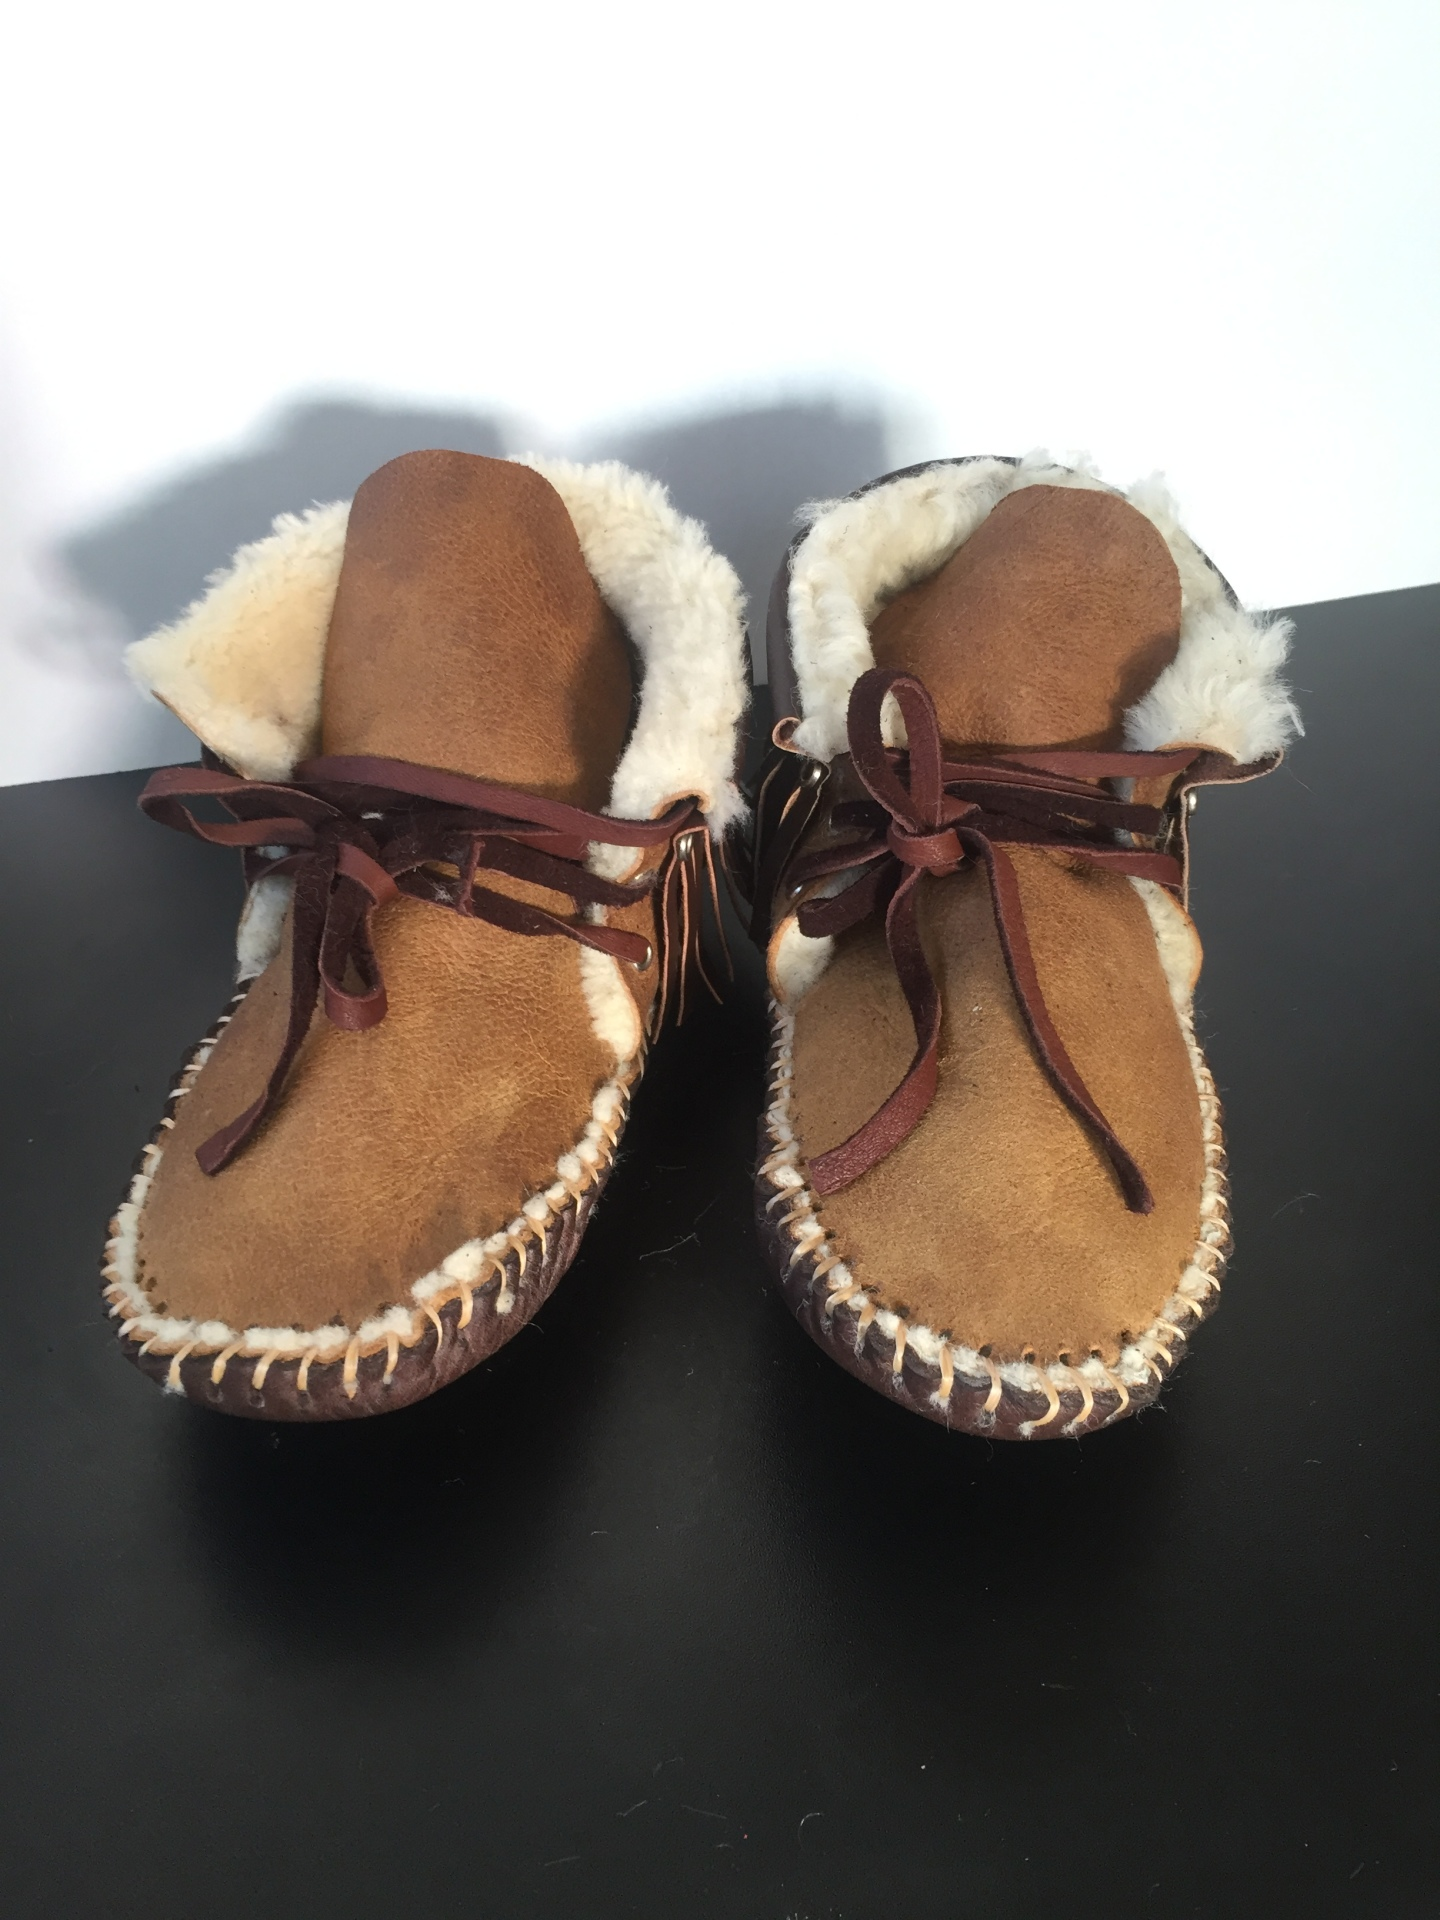 Wool Lined, Moccasin, Genuine Leather Moccasin